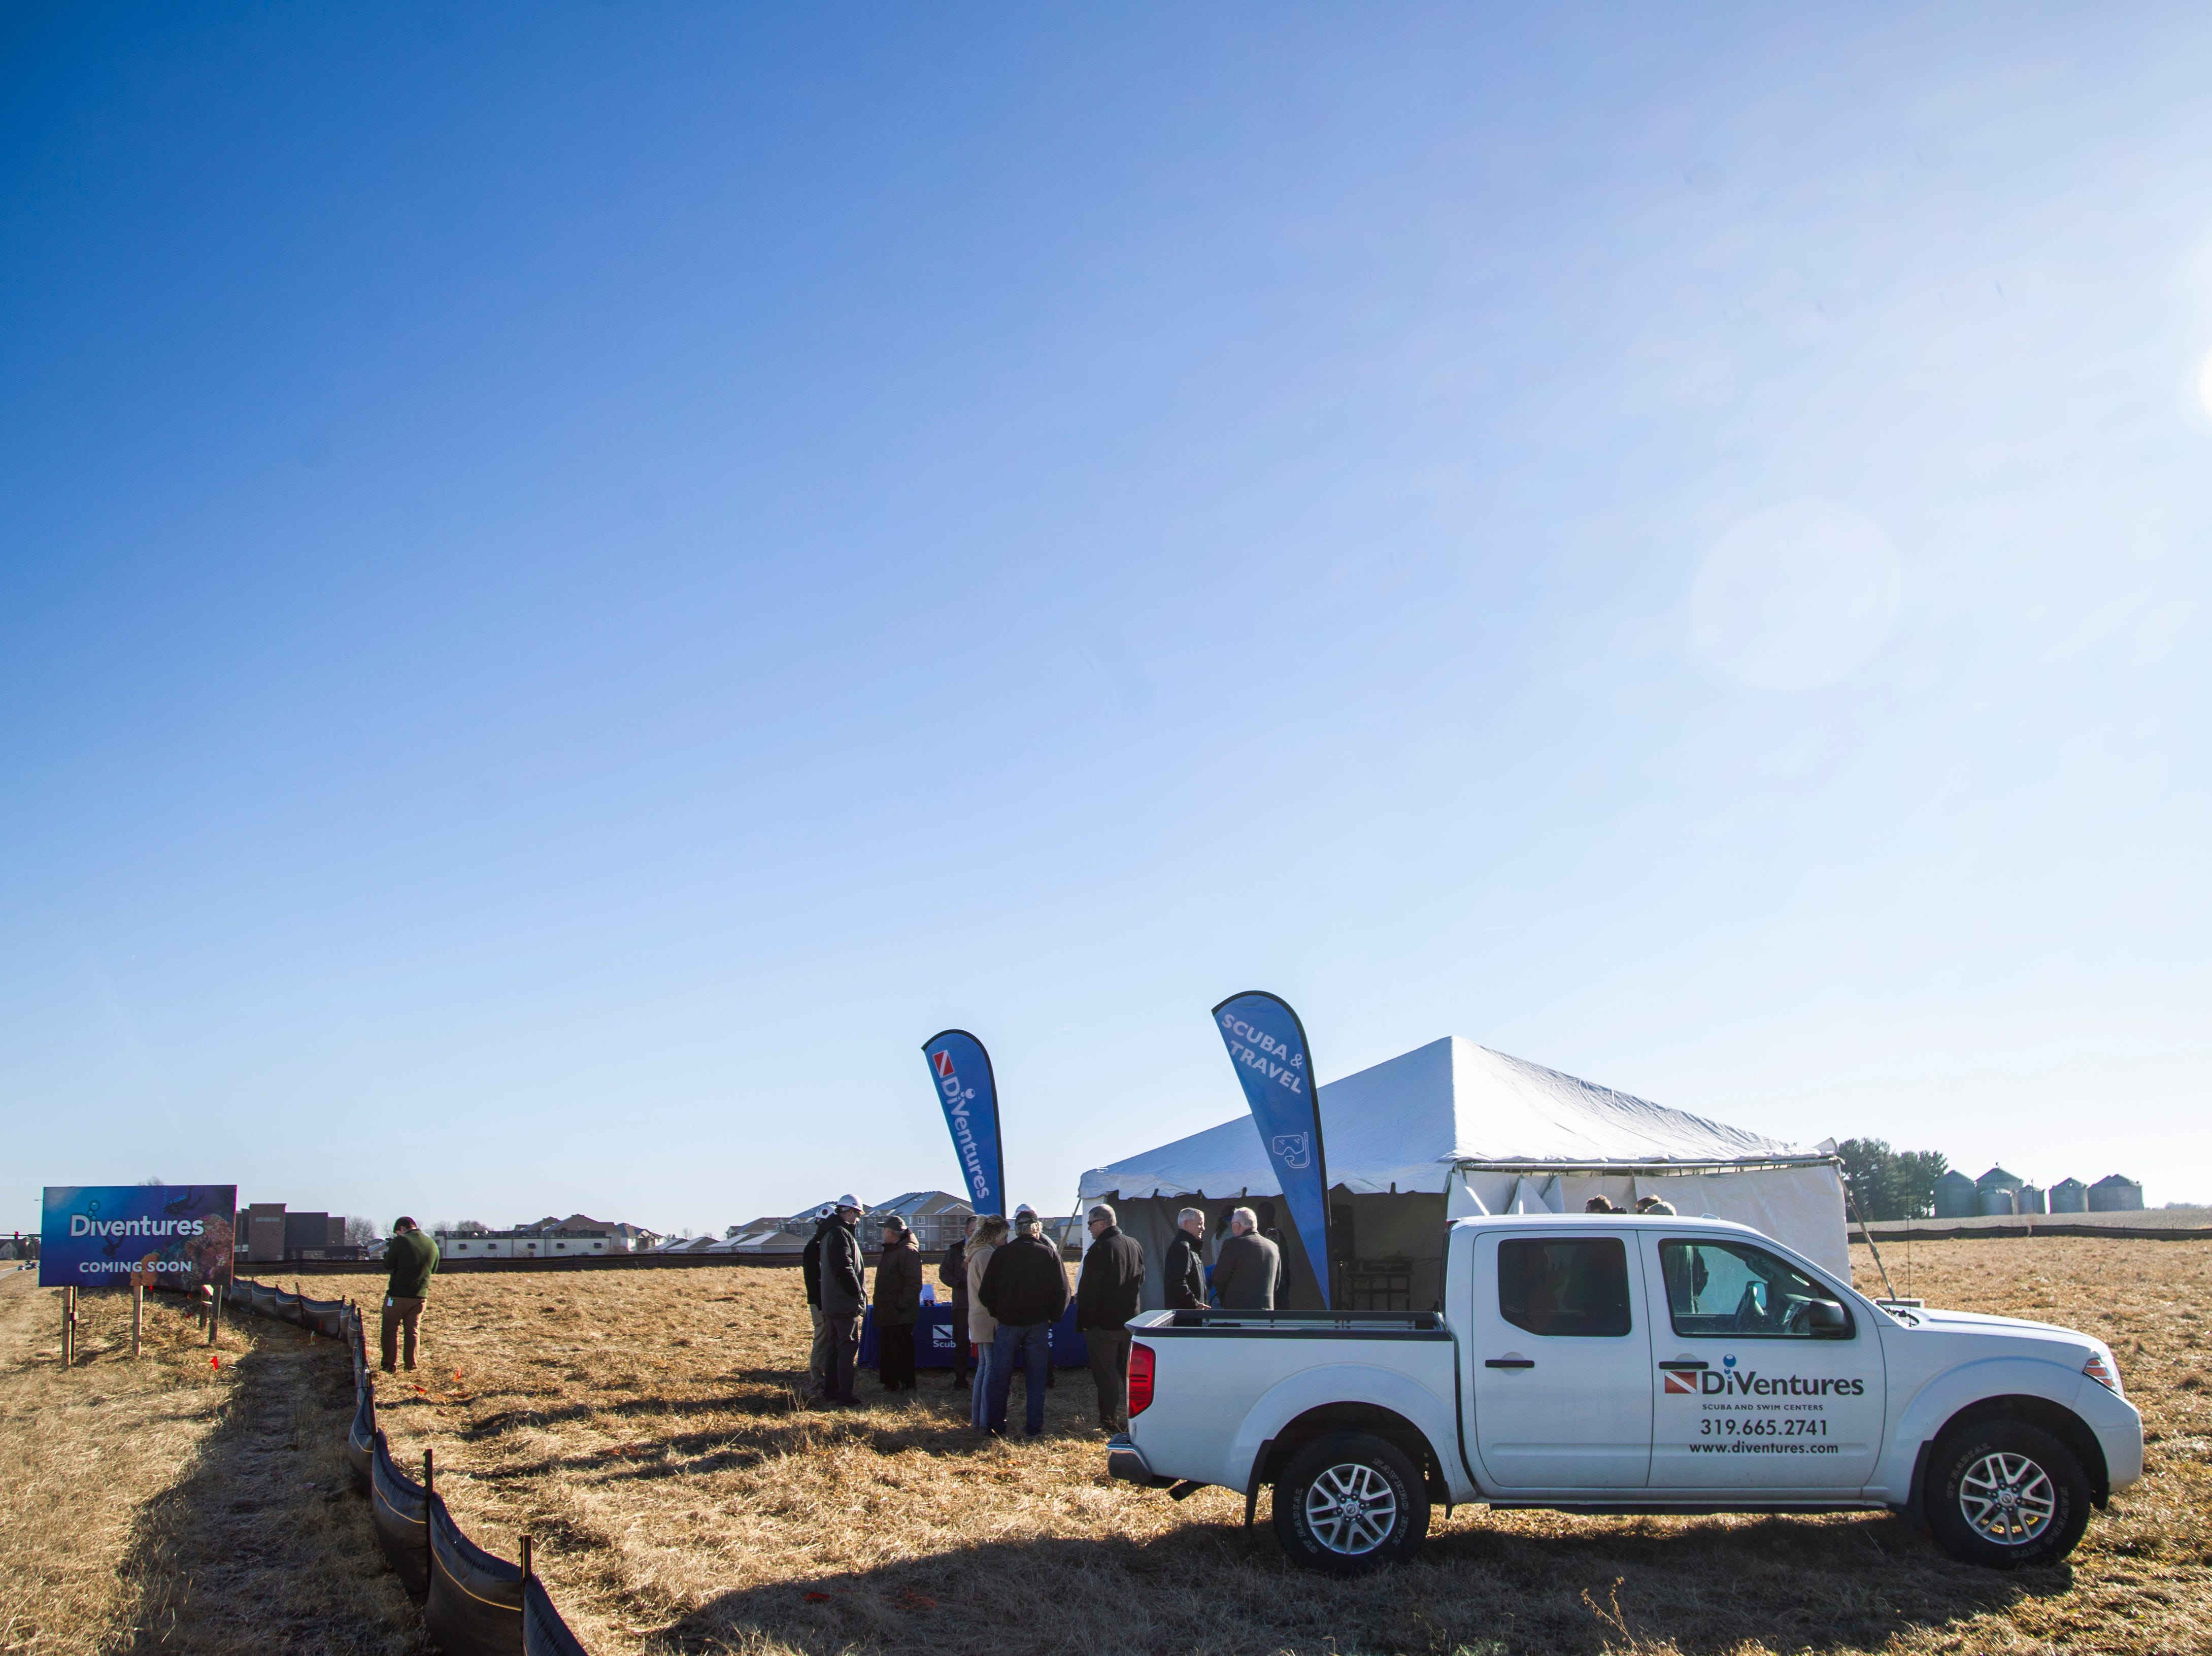 A Diventures vehicle is parked next to a tent before a groundbreaking event for a new Diventures store location on Thursday, Jan. 3, 2019, at the 1895 West Penn Street in North Liberty, Iowa.